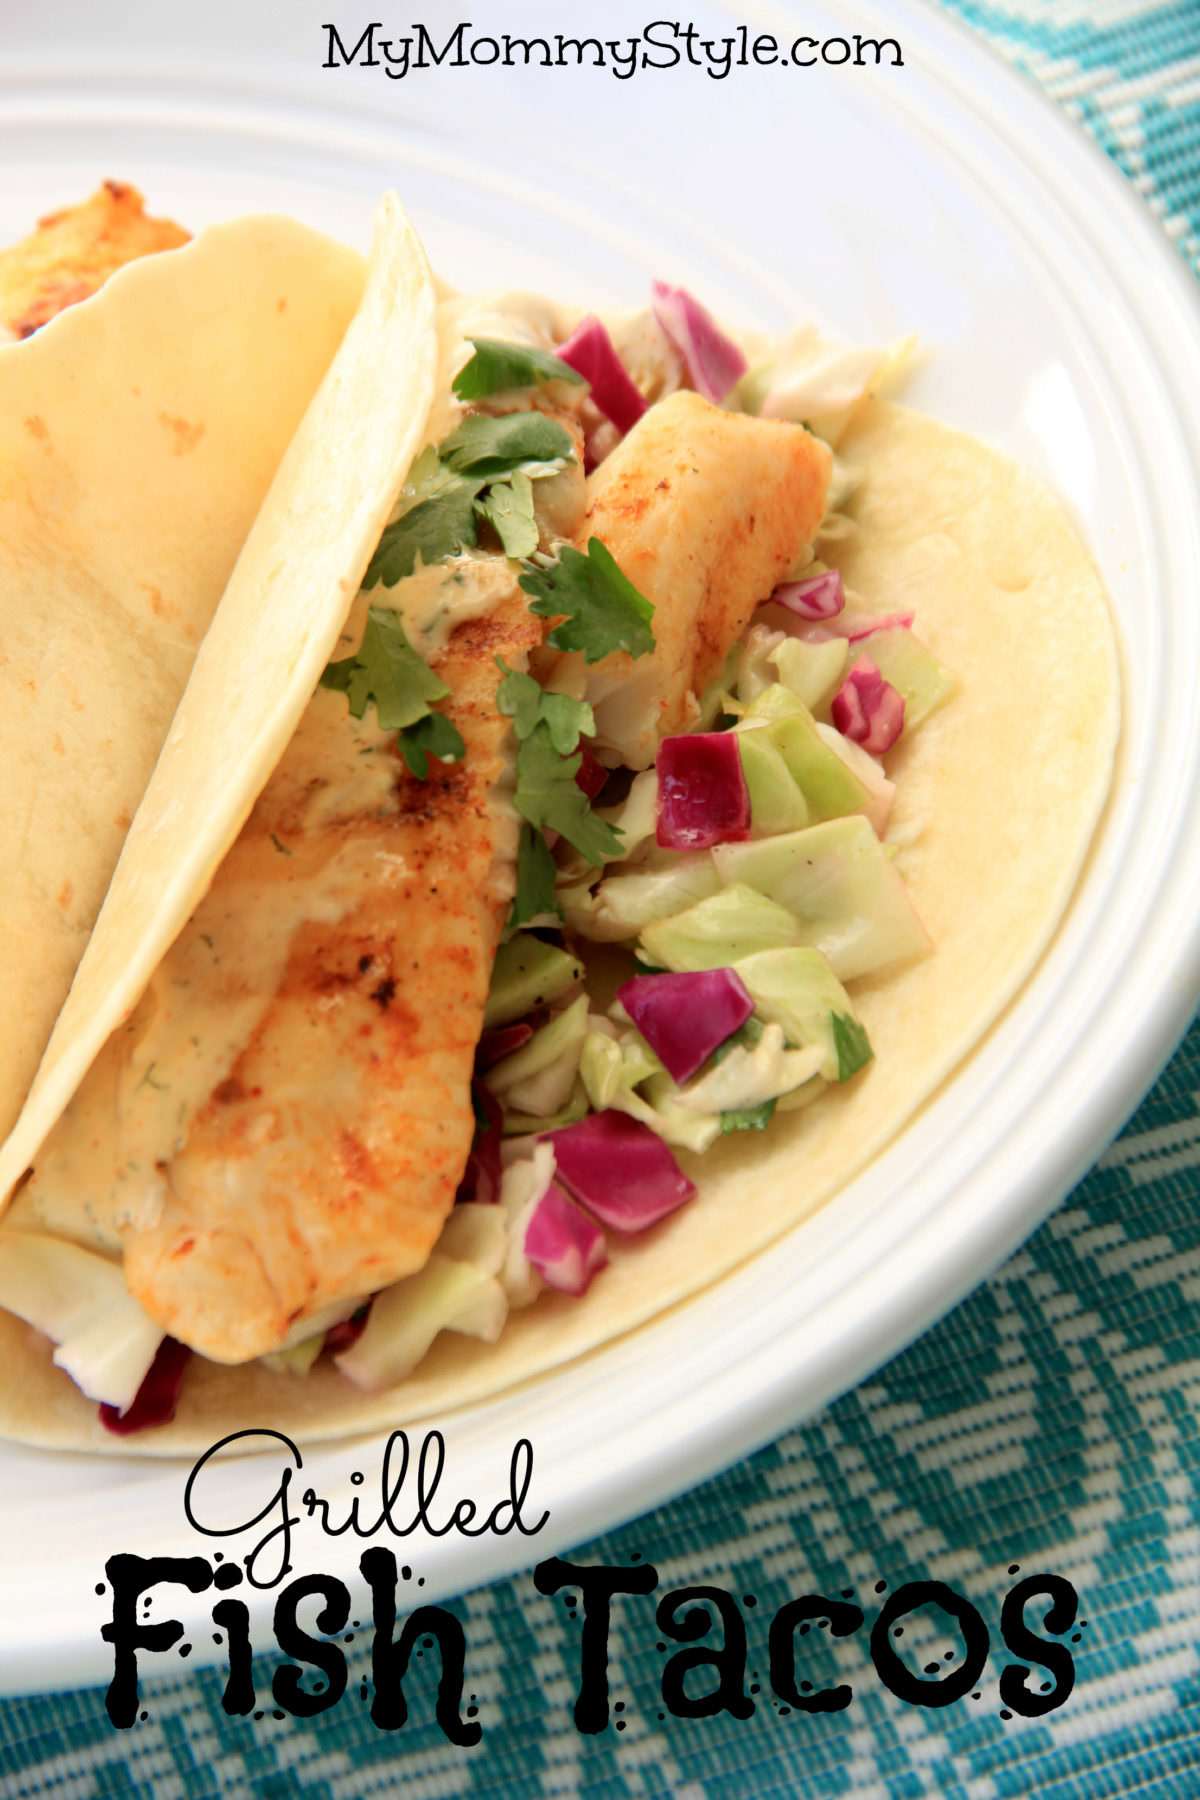 Grilled fish tacos my mommy style for Healthy fish dinner